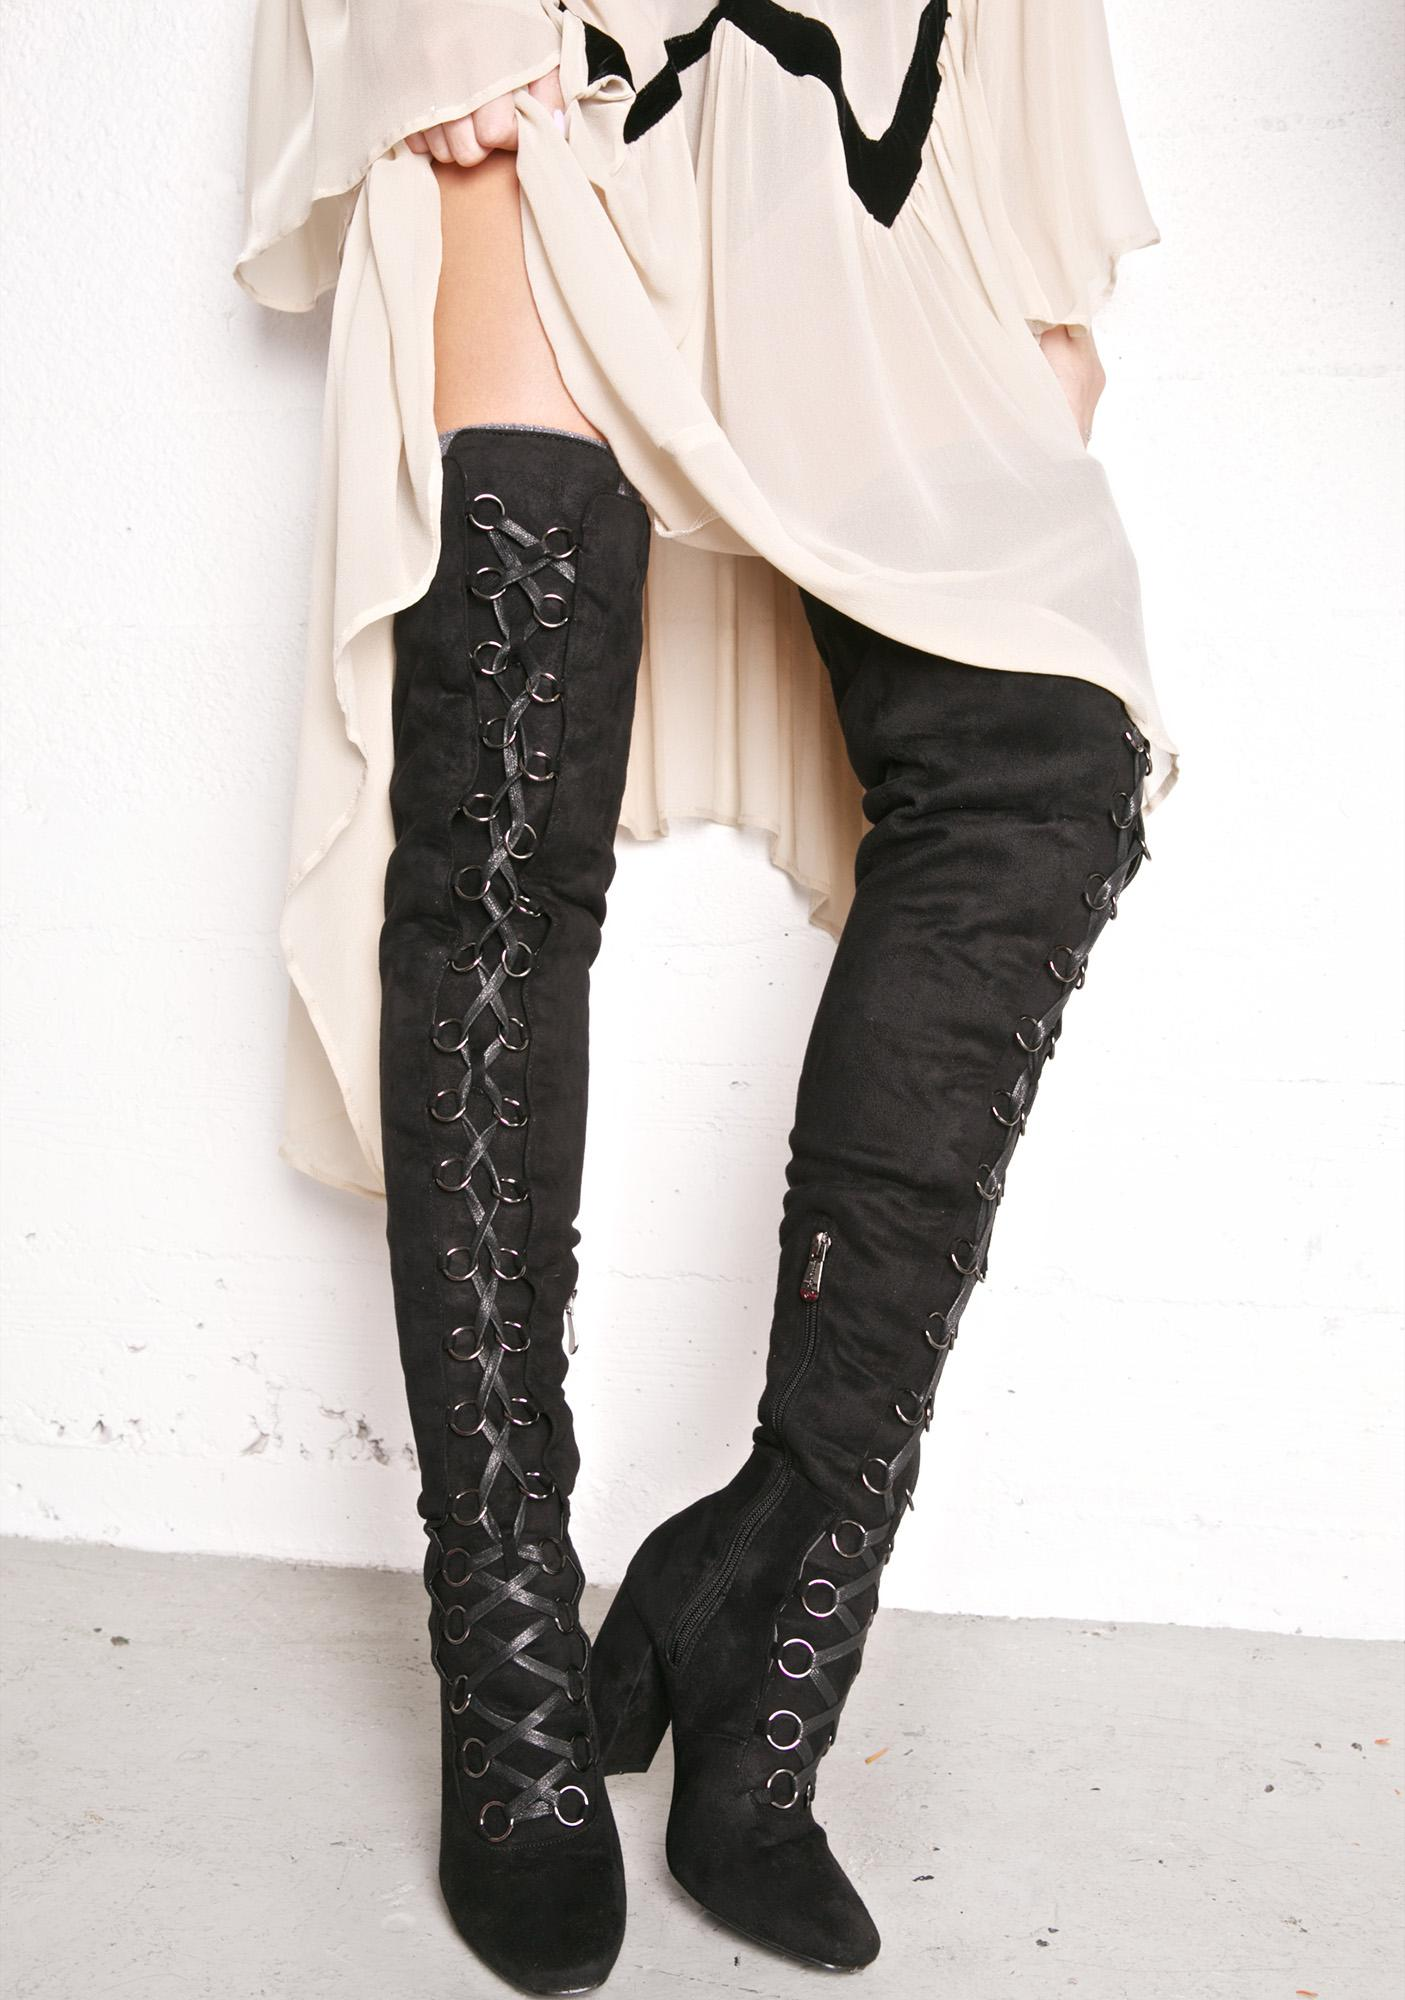 Dark Love Story Thigh-High Boots